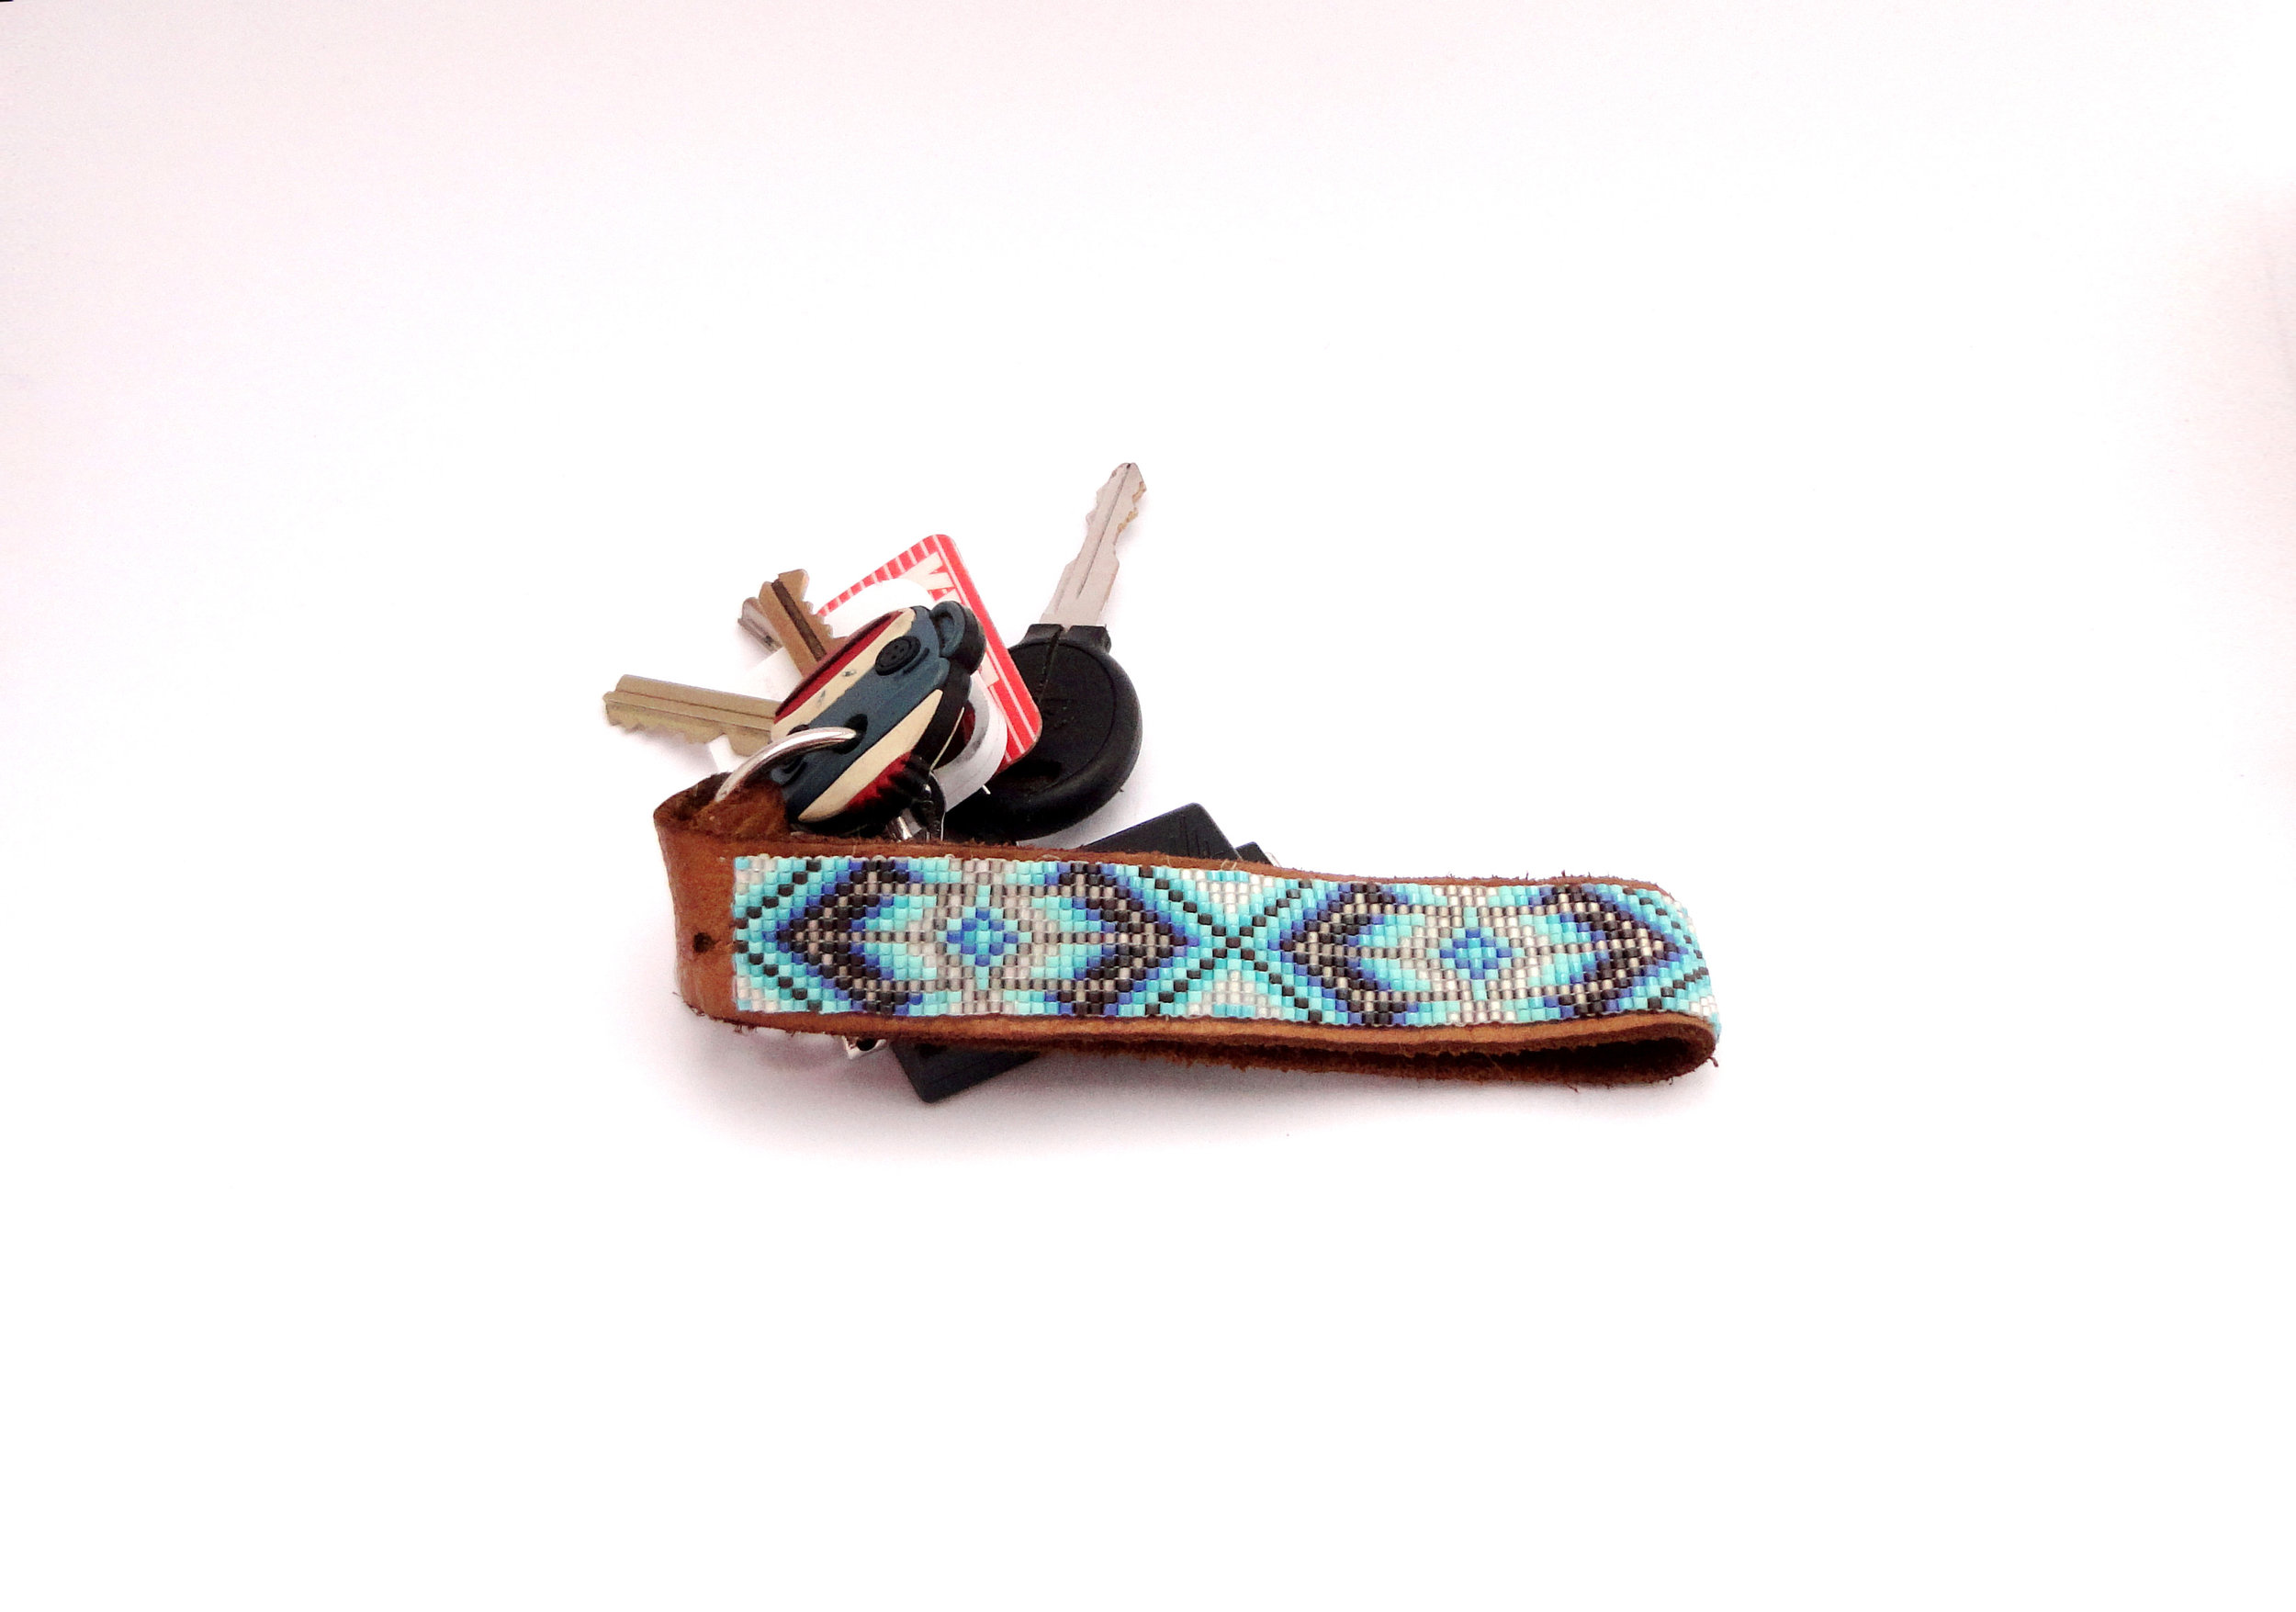 My finished square stitch beaded keychain.